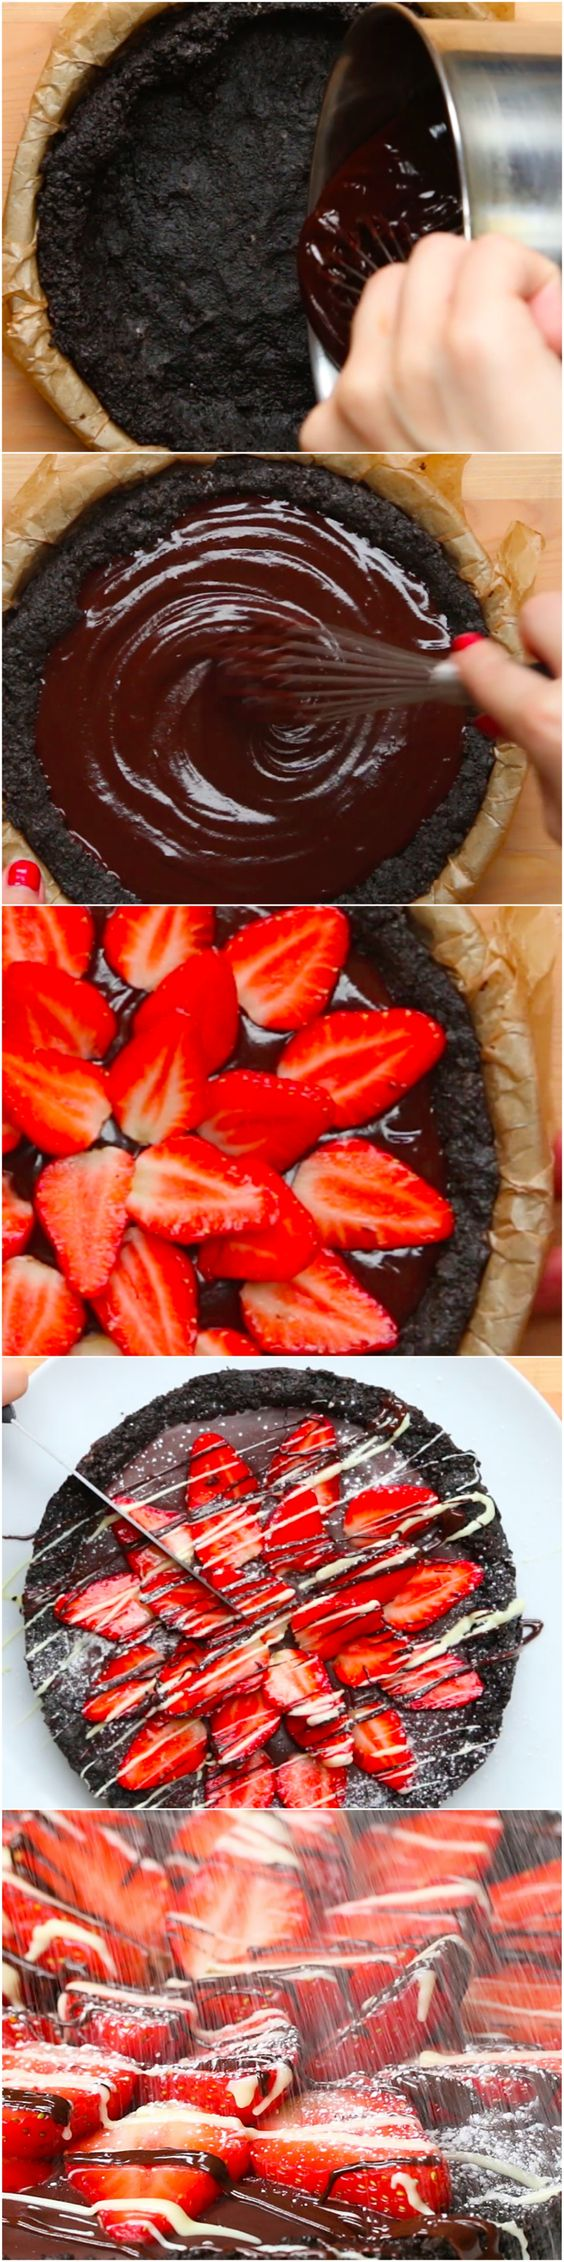 Easy Strawberry And Chocolate Tart